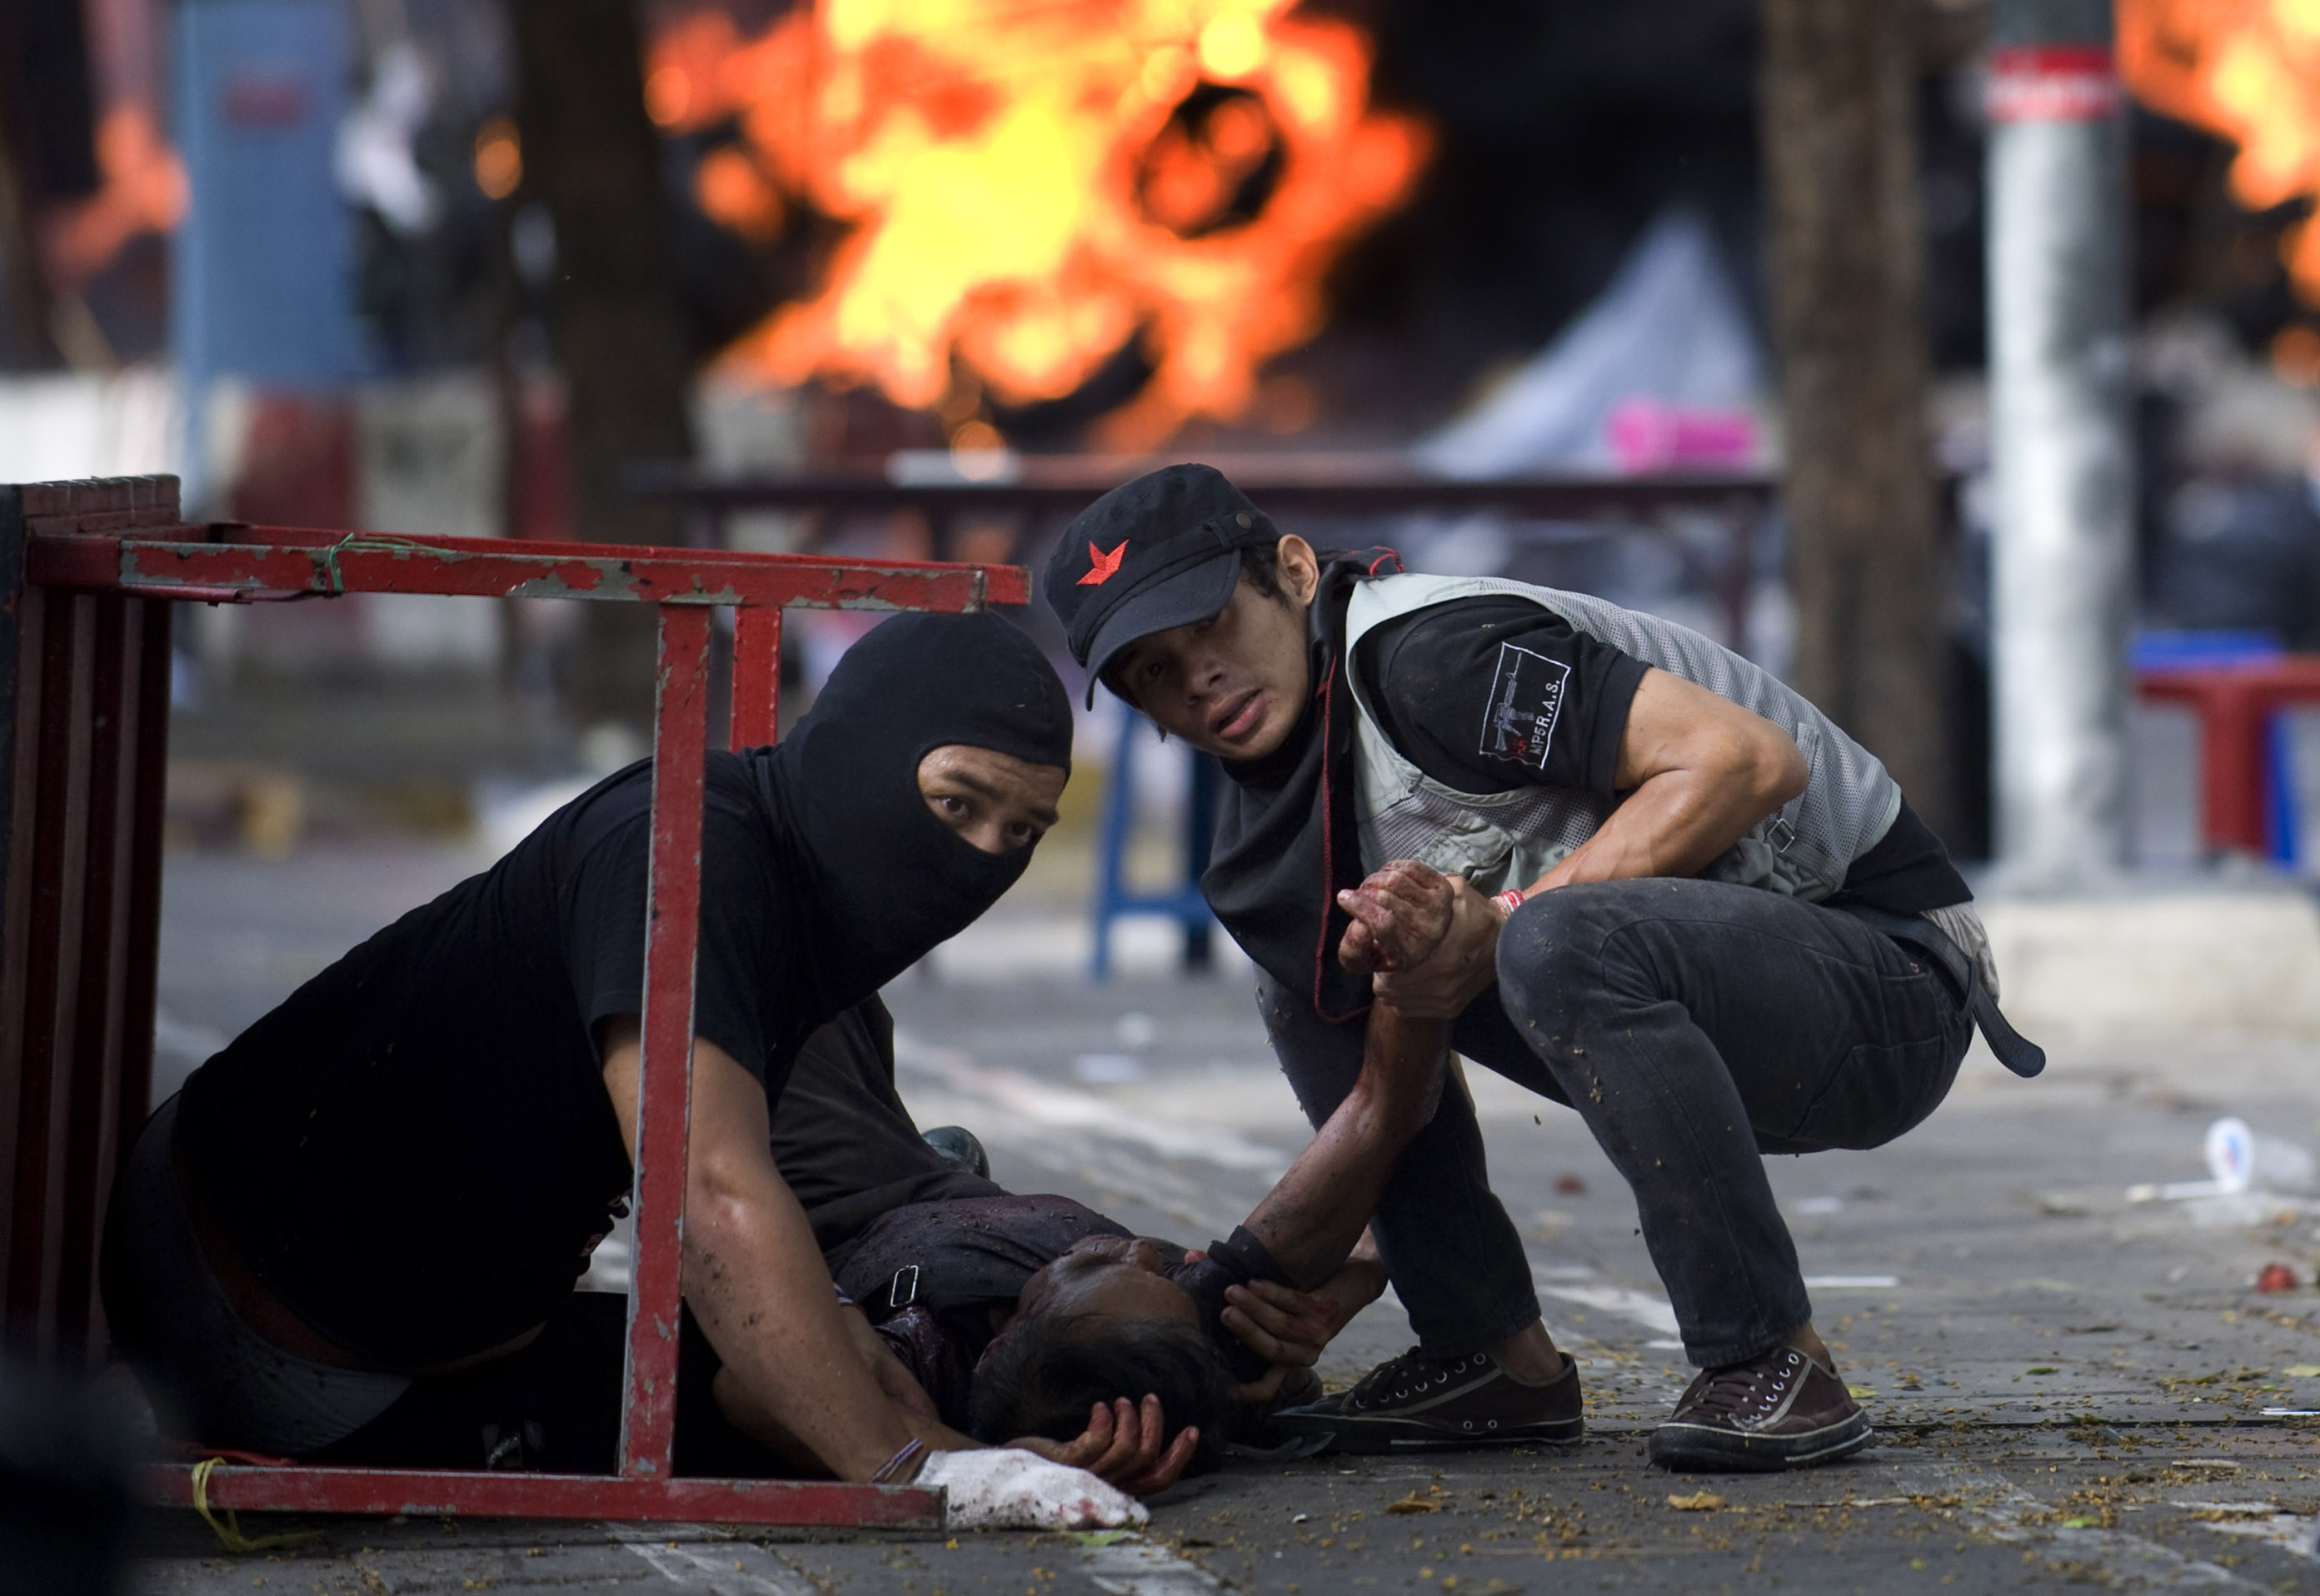 A wounded man is dragged to safety by two fellow protesters after he was shot  while trying to help his comrades collect a wounded Red Shirt protester. More than 80 civilians were killed during the three-month span.